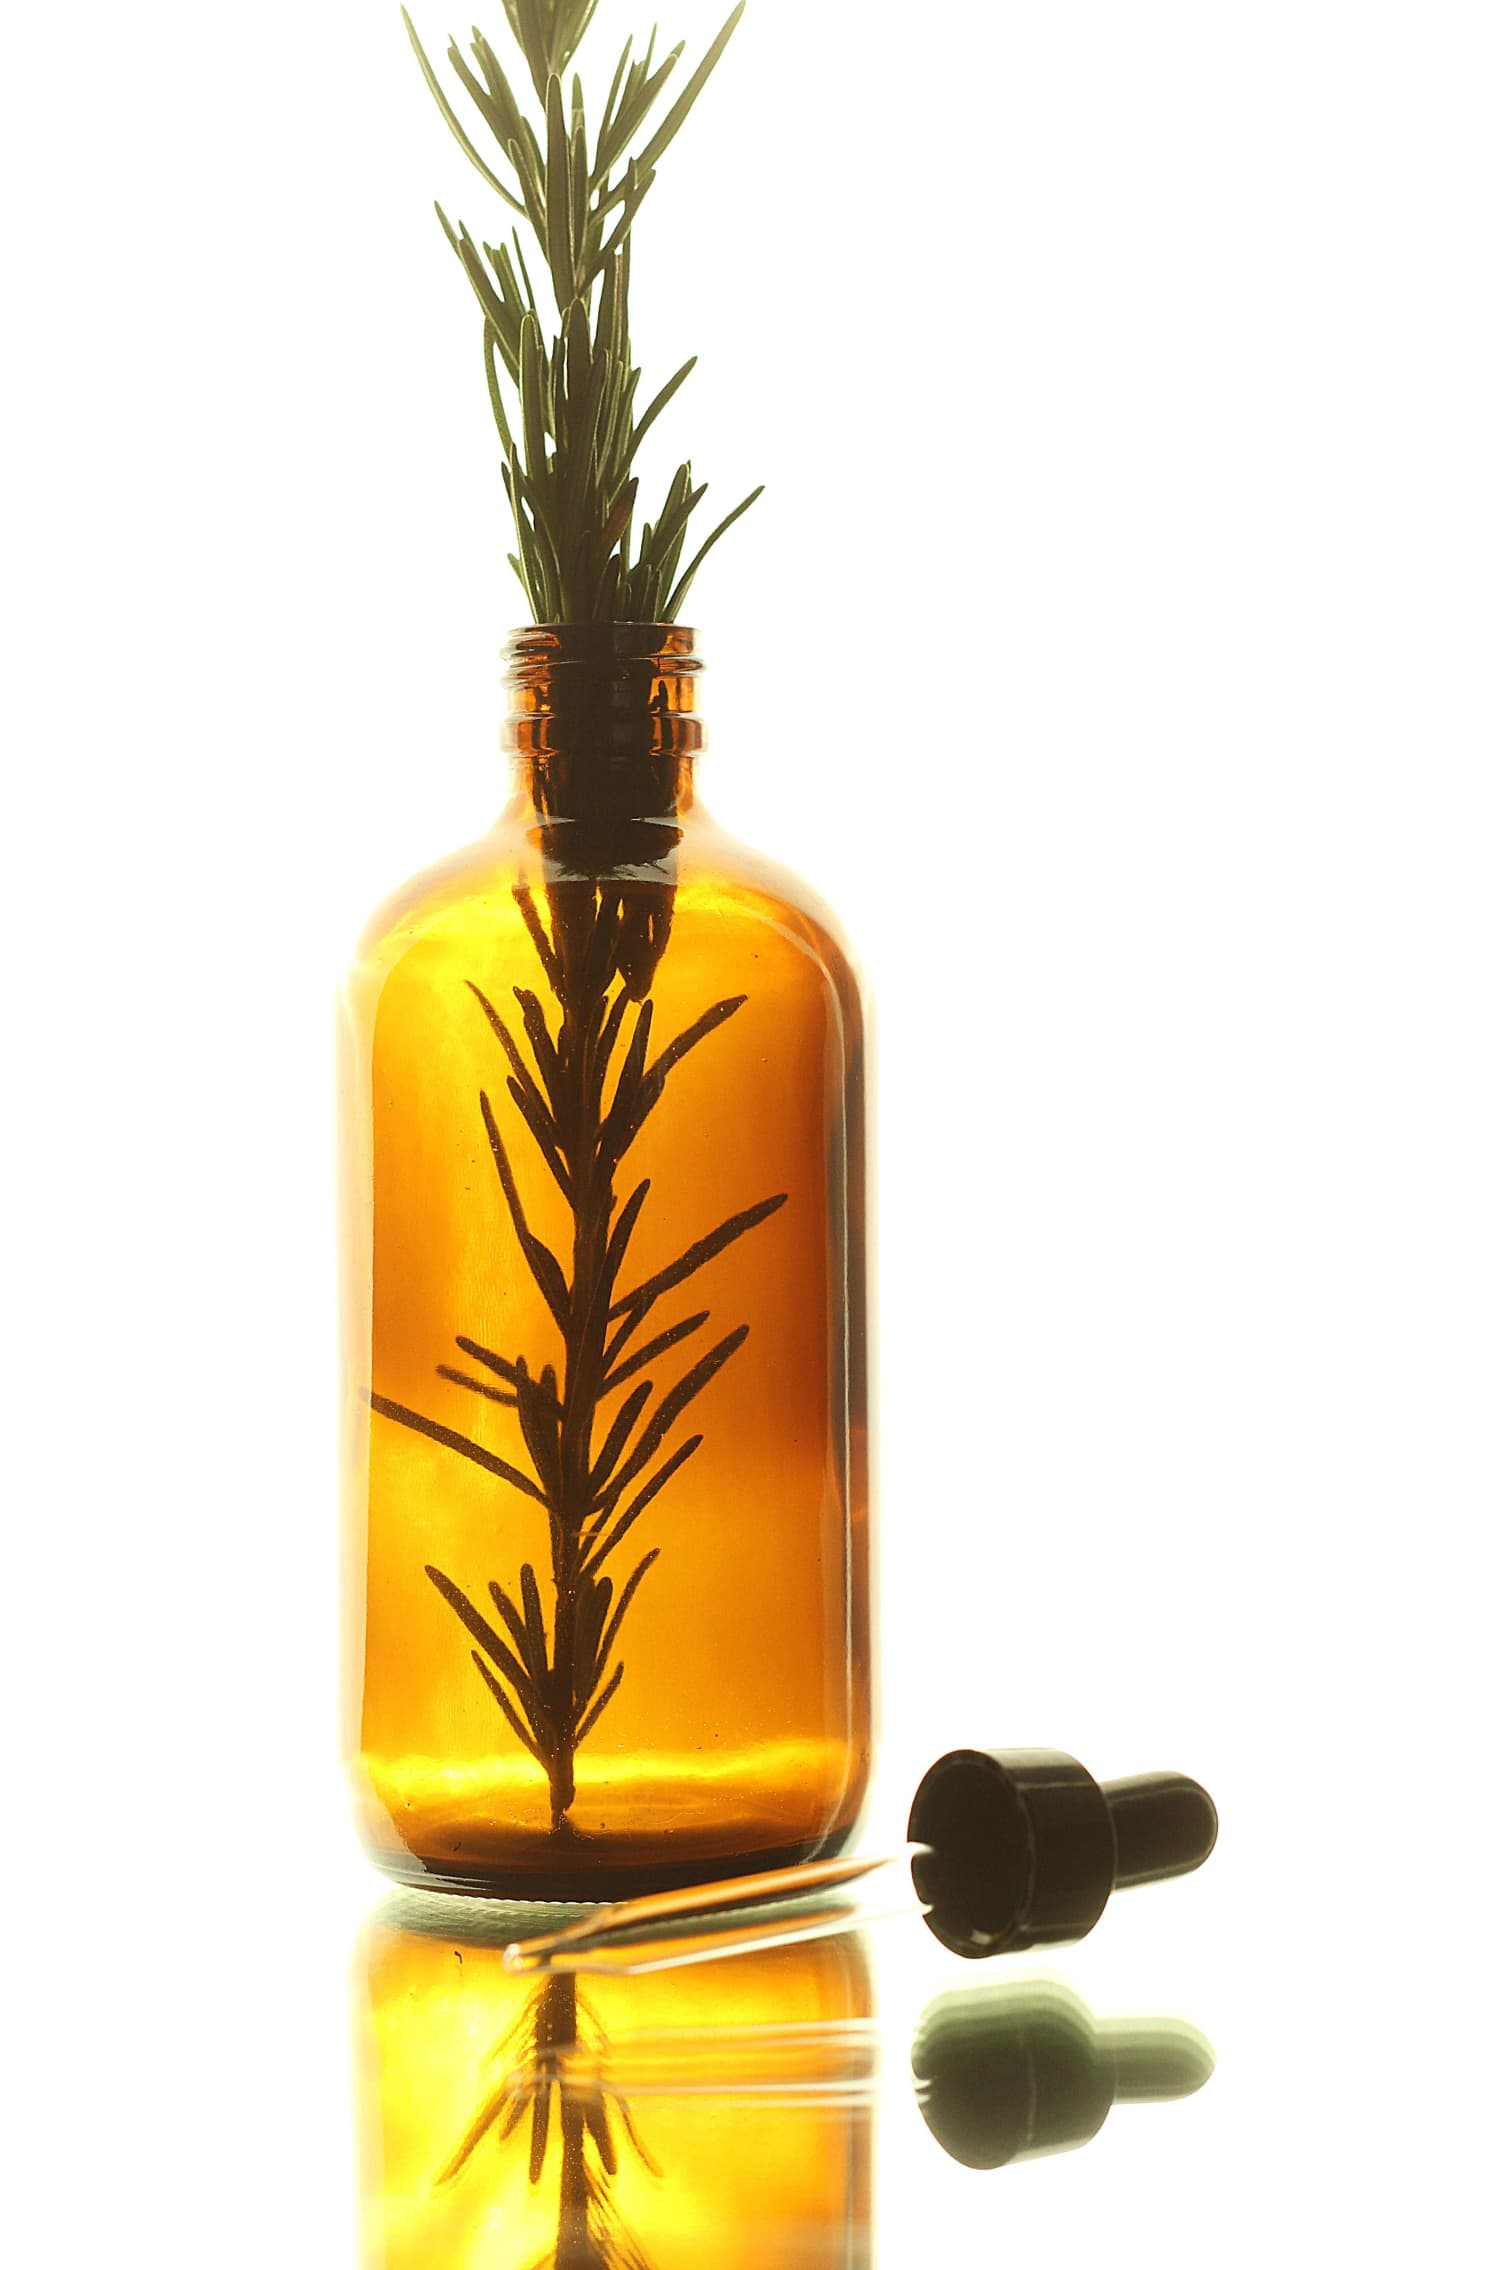 Home Remedy Recipes: How To Use Rosemary Essential Oil